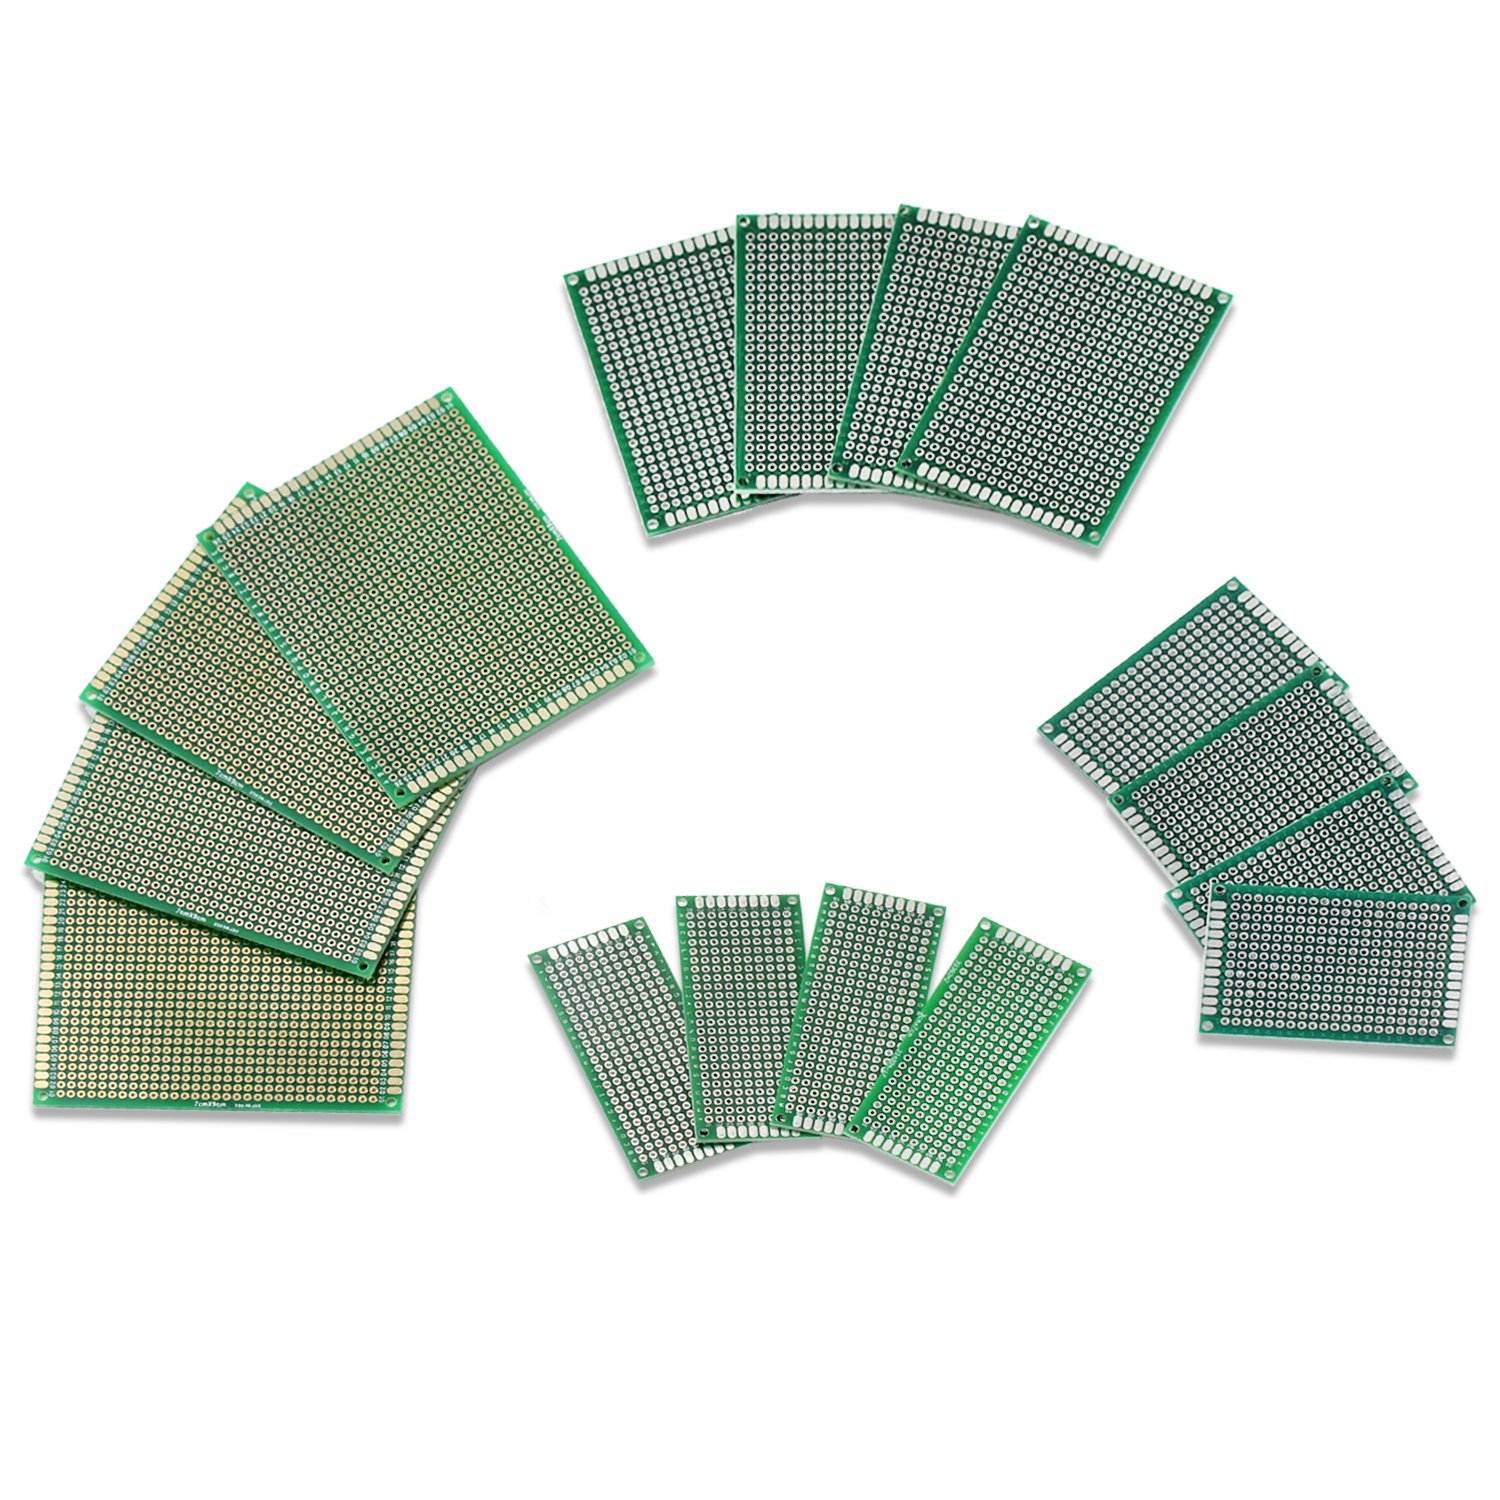 Ocr ® 16PCS PCB Board Universal Double Sided Prototyping Breadboard Panel Multiple Sizes Ocrtech